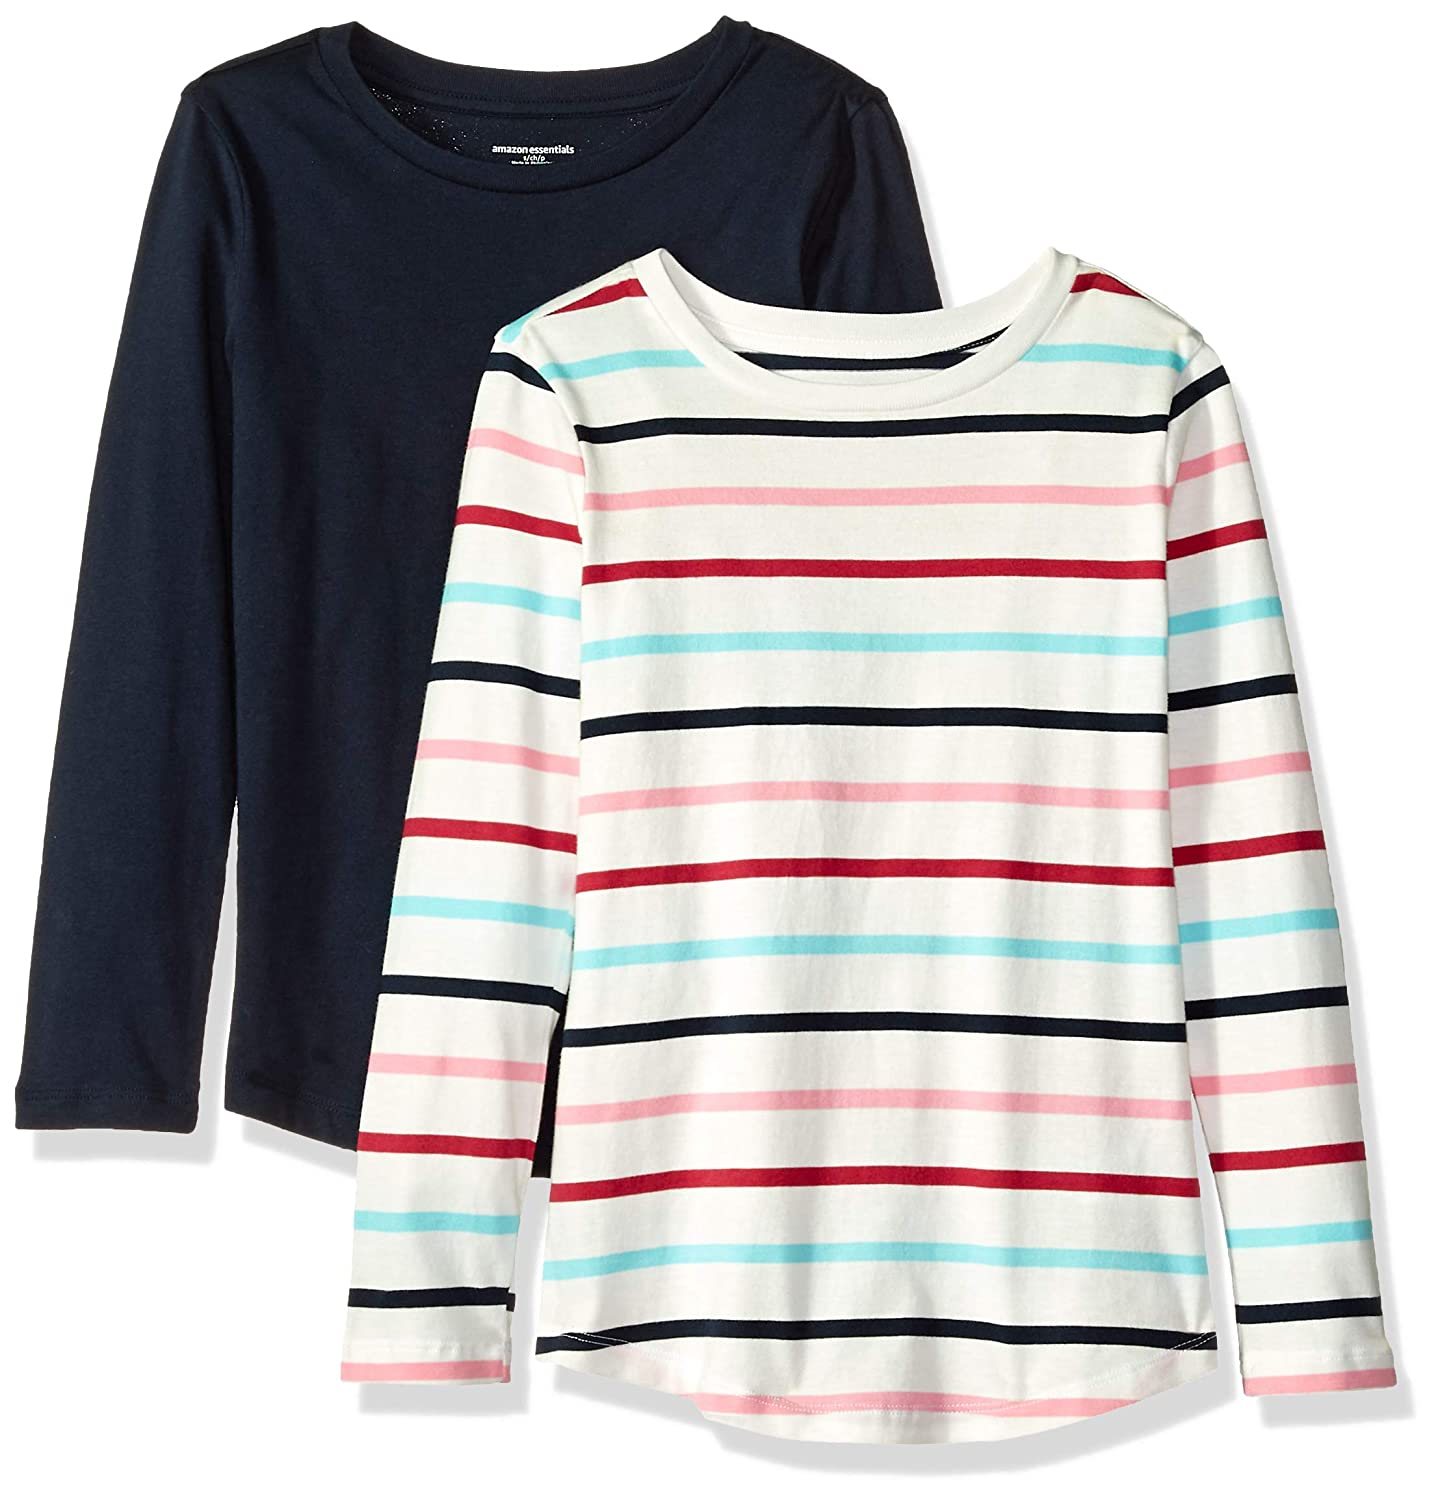 Essentials Girls Girls' 2-Pack Long-Sleeve Tees GAE45083F18